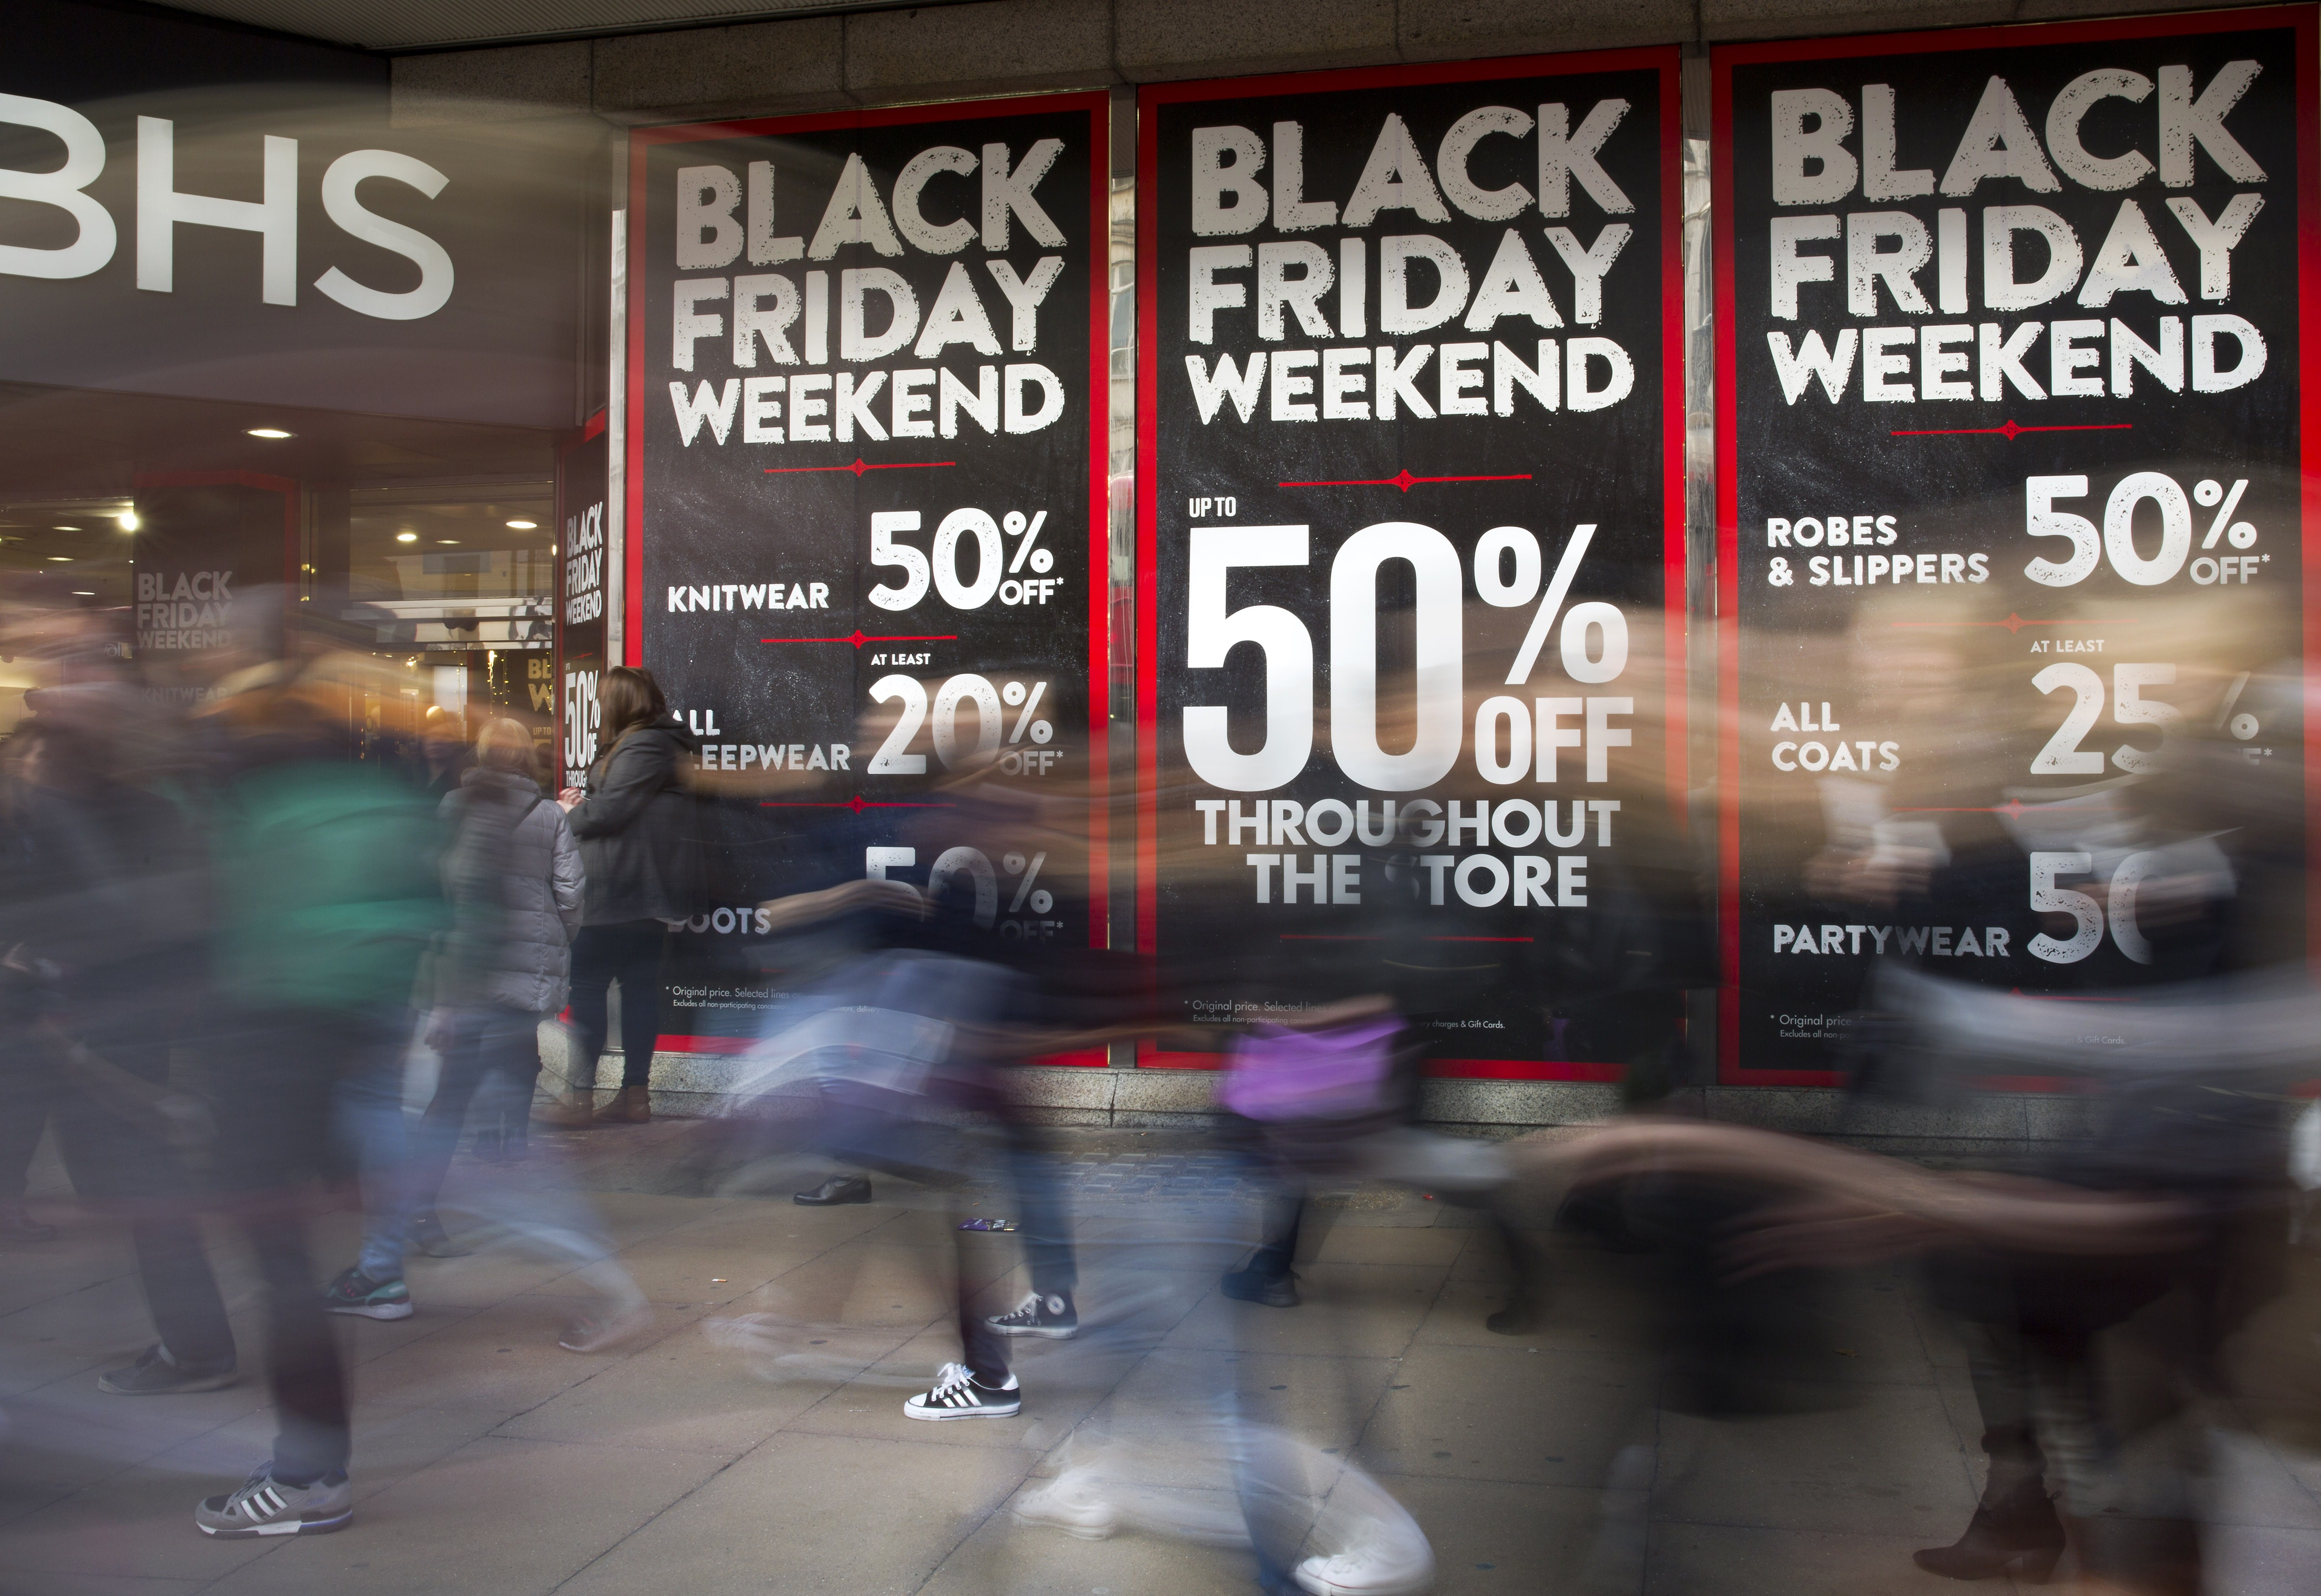 Le Meilleur Net A Porter's Black Friday Sale Is Here Racked Ce Mois Ci